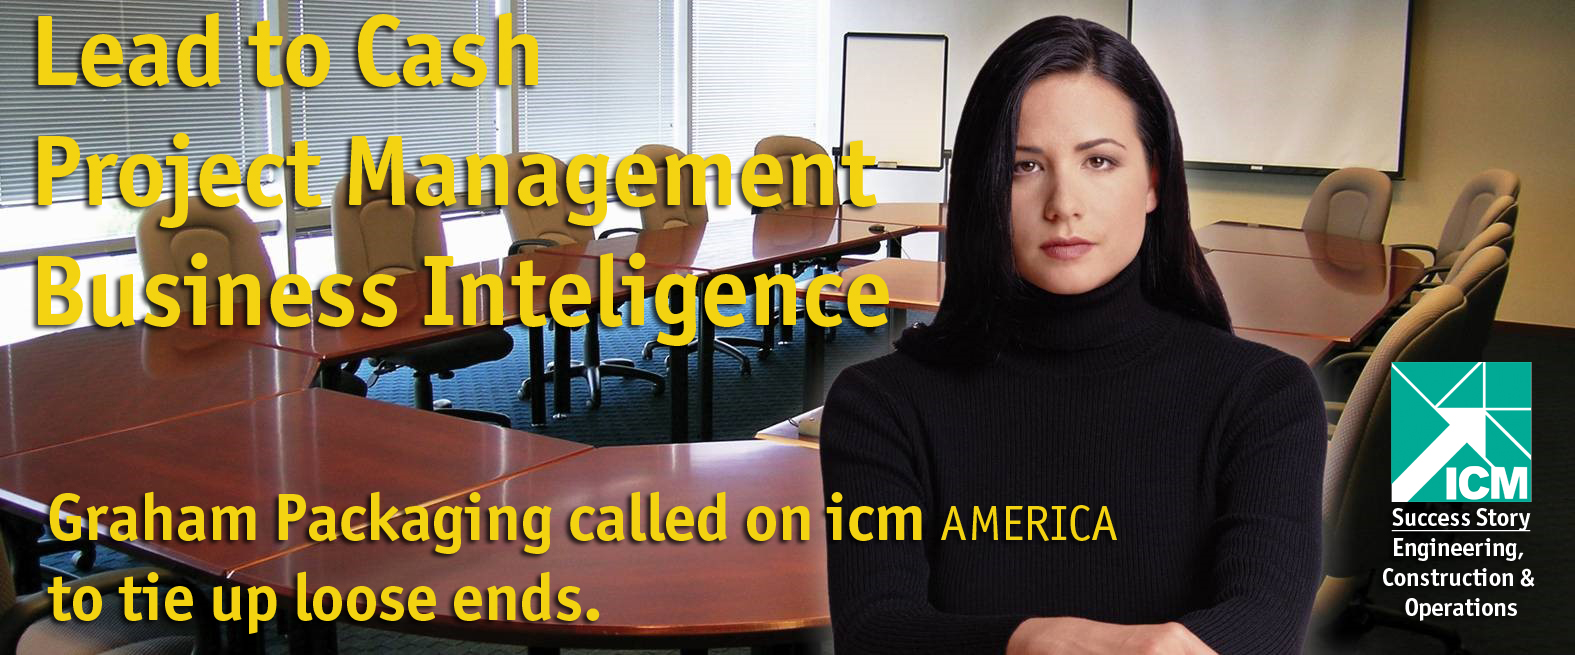 Lead -to-Cash, Project Management, Business Intelligence, Graham Packaging called on ICM America to tie up the loose ends.